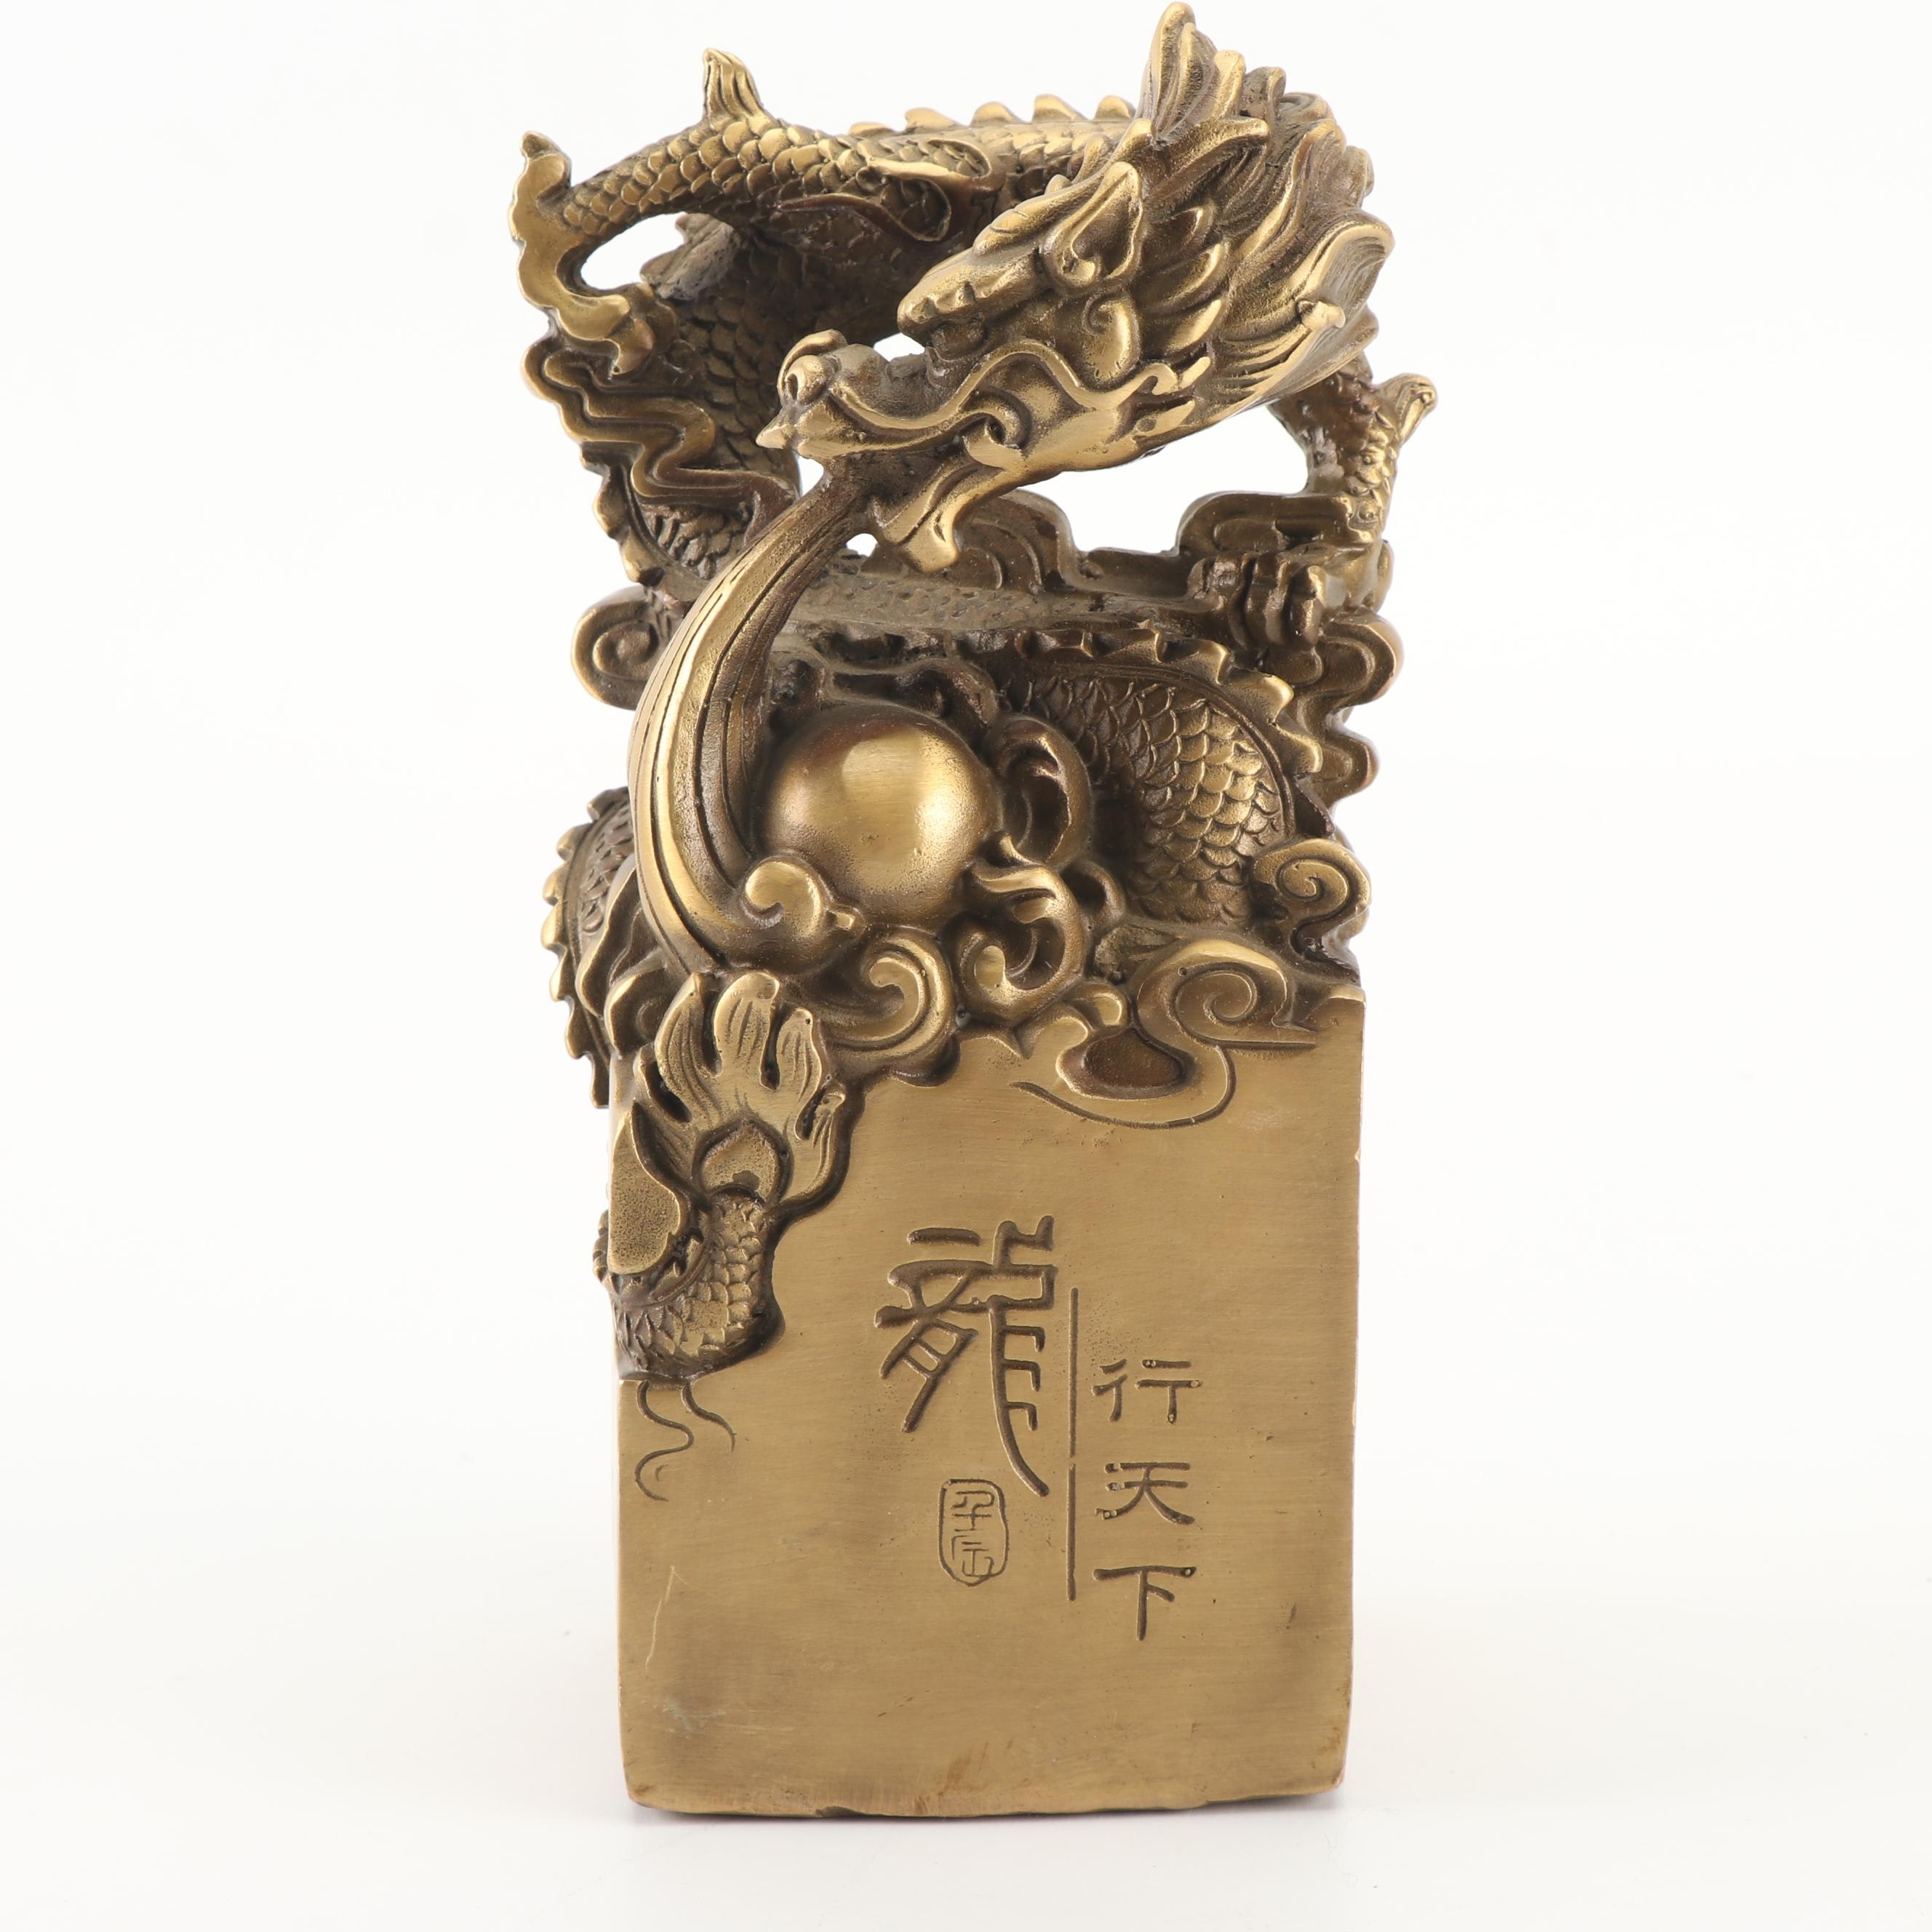 Chinese Brass Censer with Dragon Brass Seal